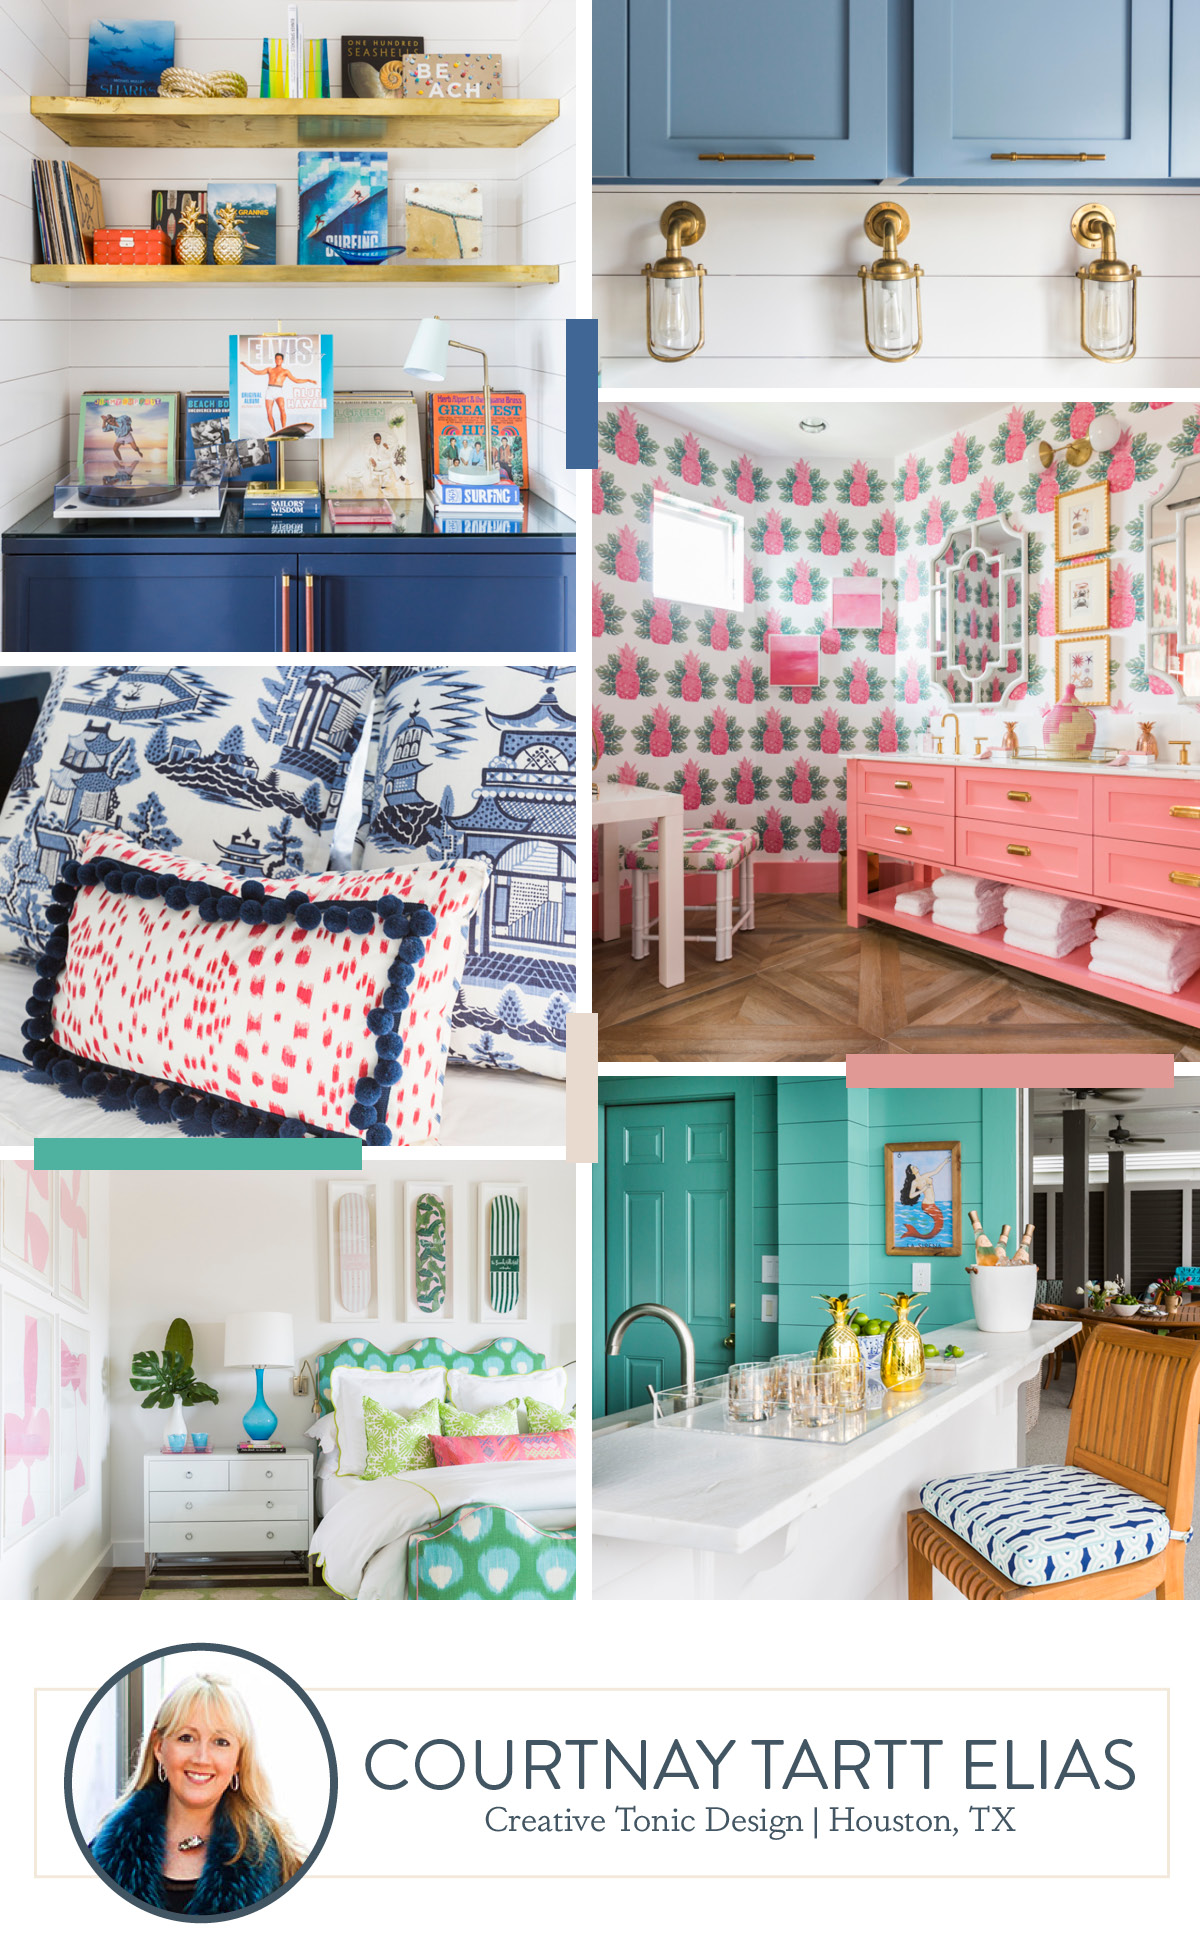 Follow These 7 Essential Tips for Decorating Your Beach Home